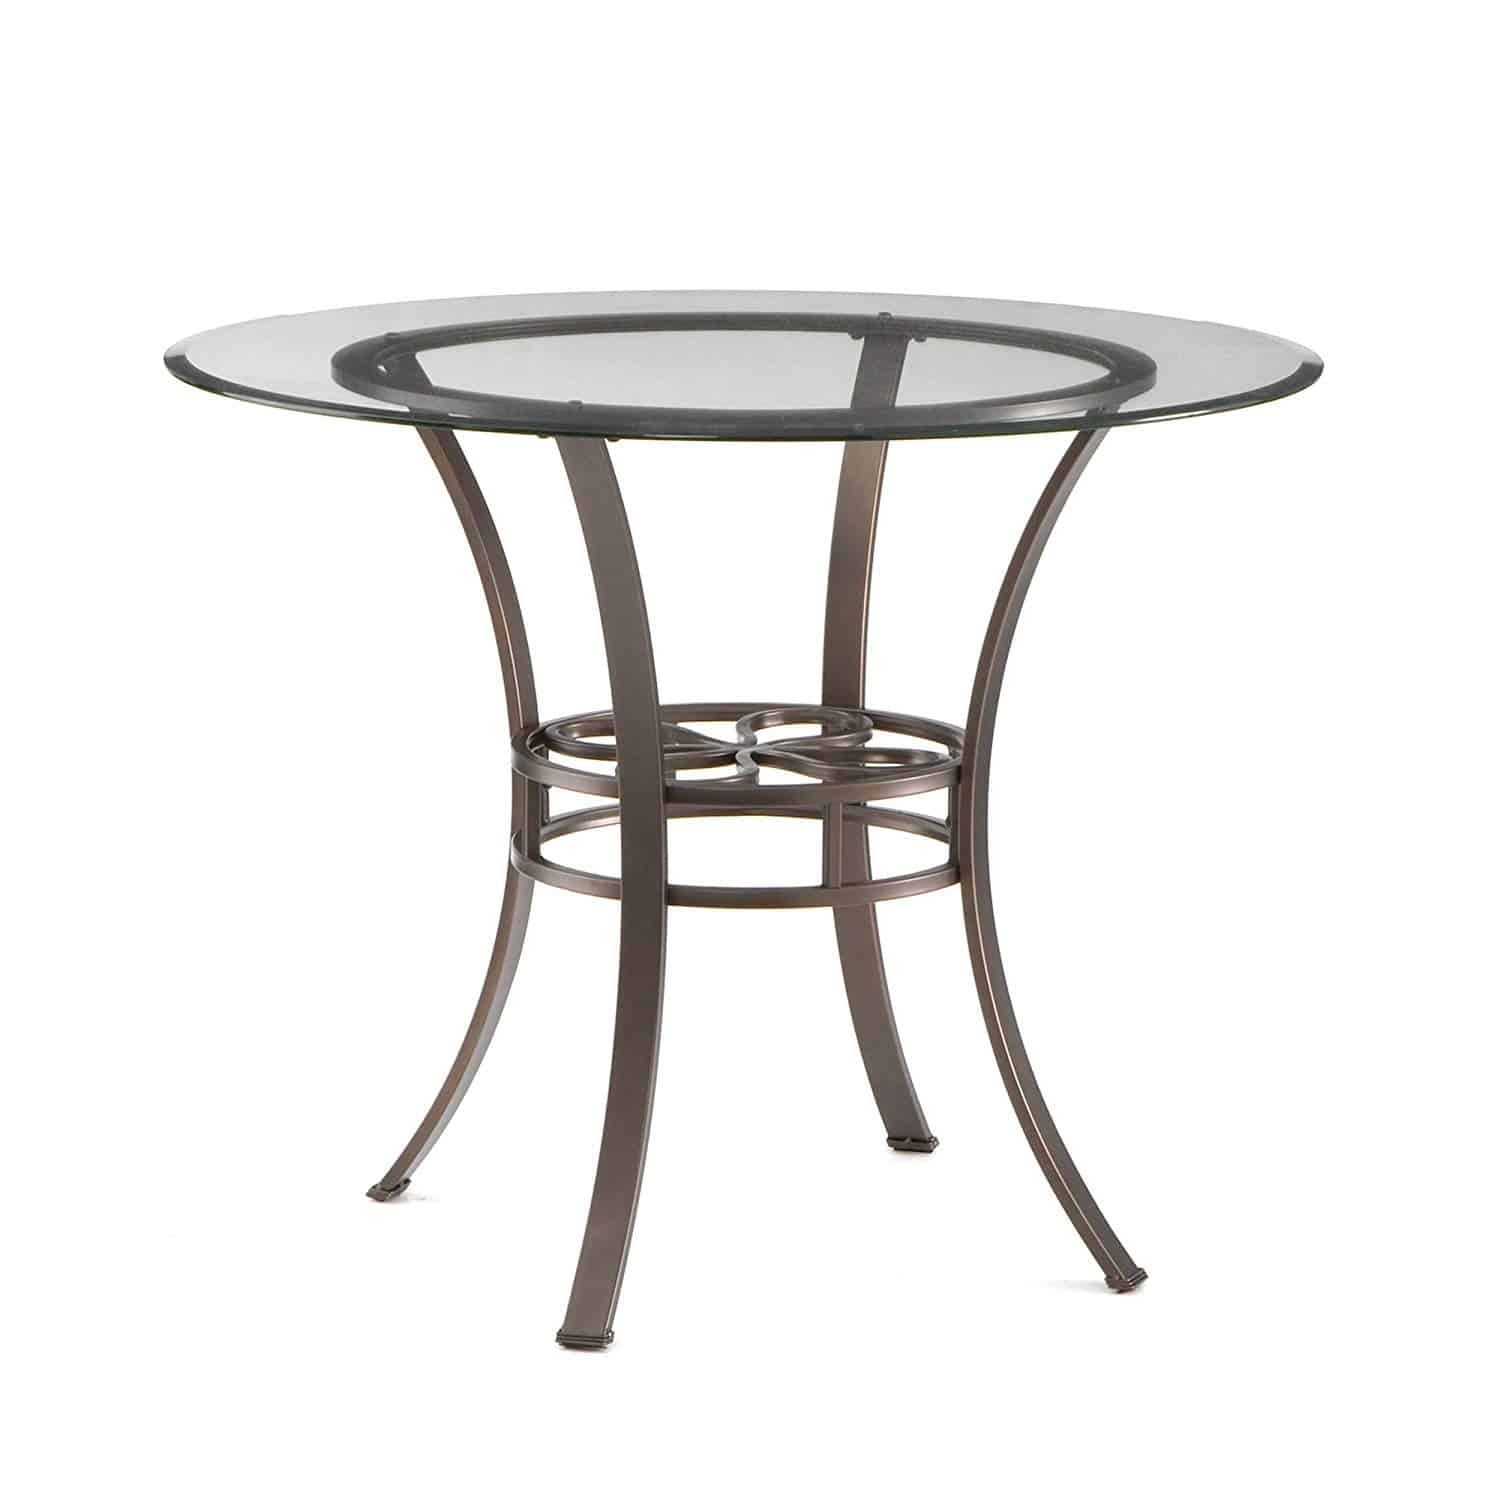 Lucianna Round Dining Table